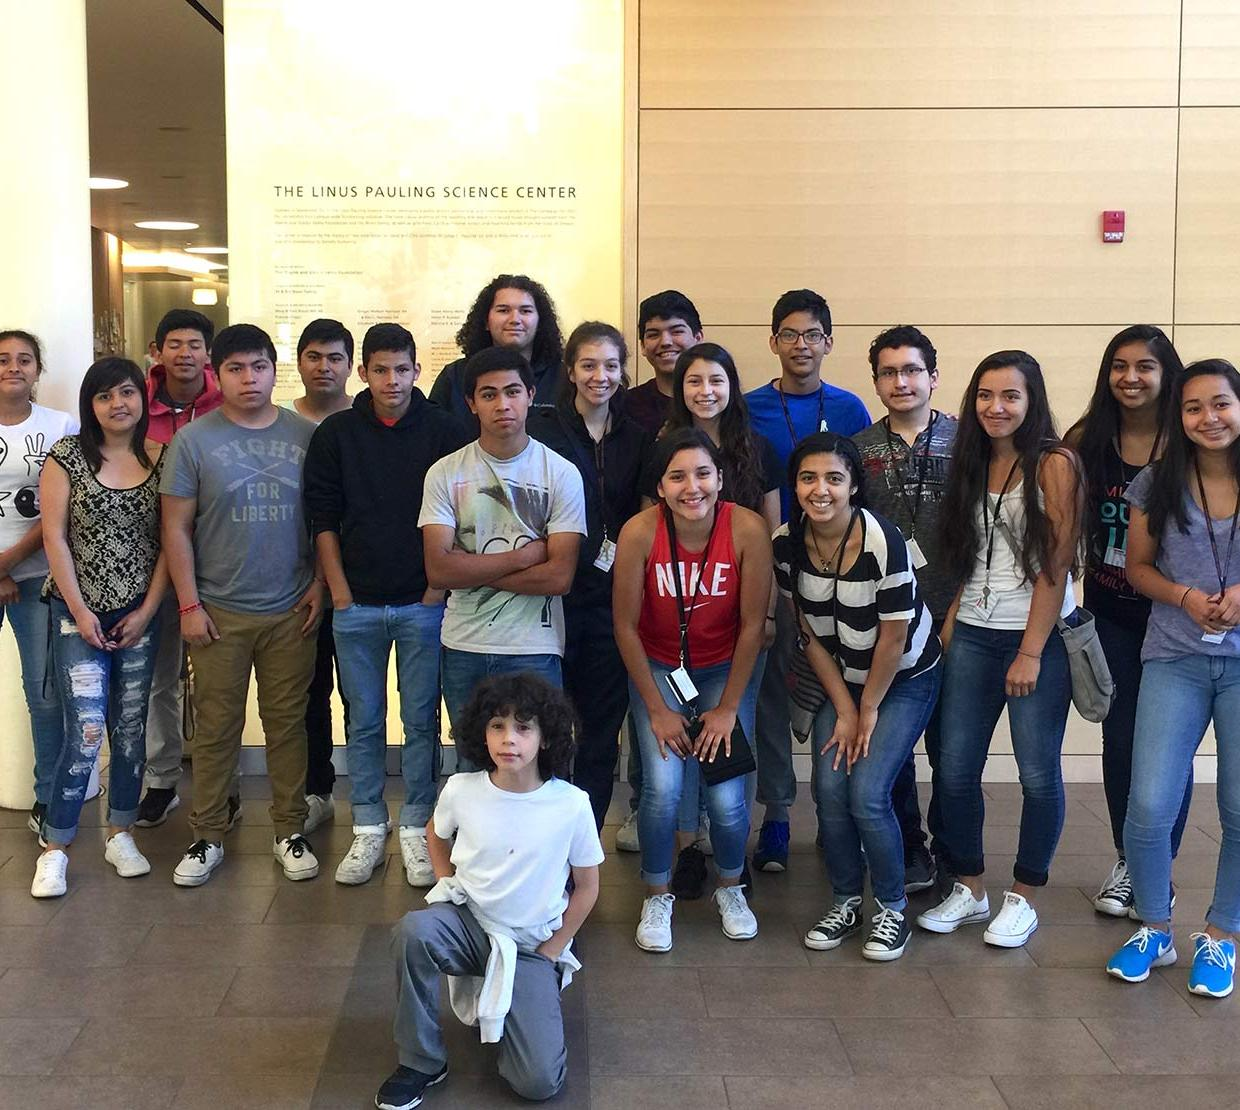 group photo of Juntos campers in Linus Pauling